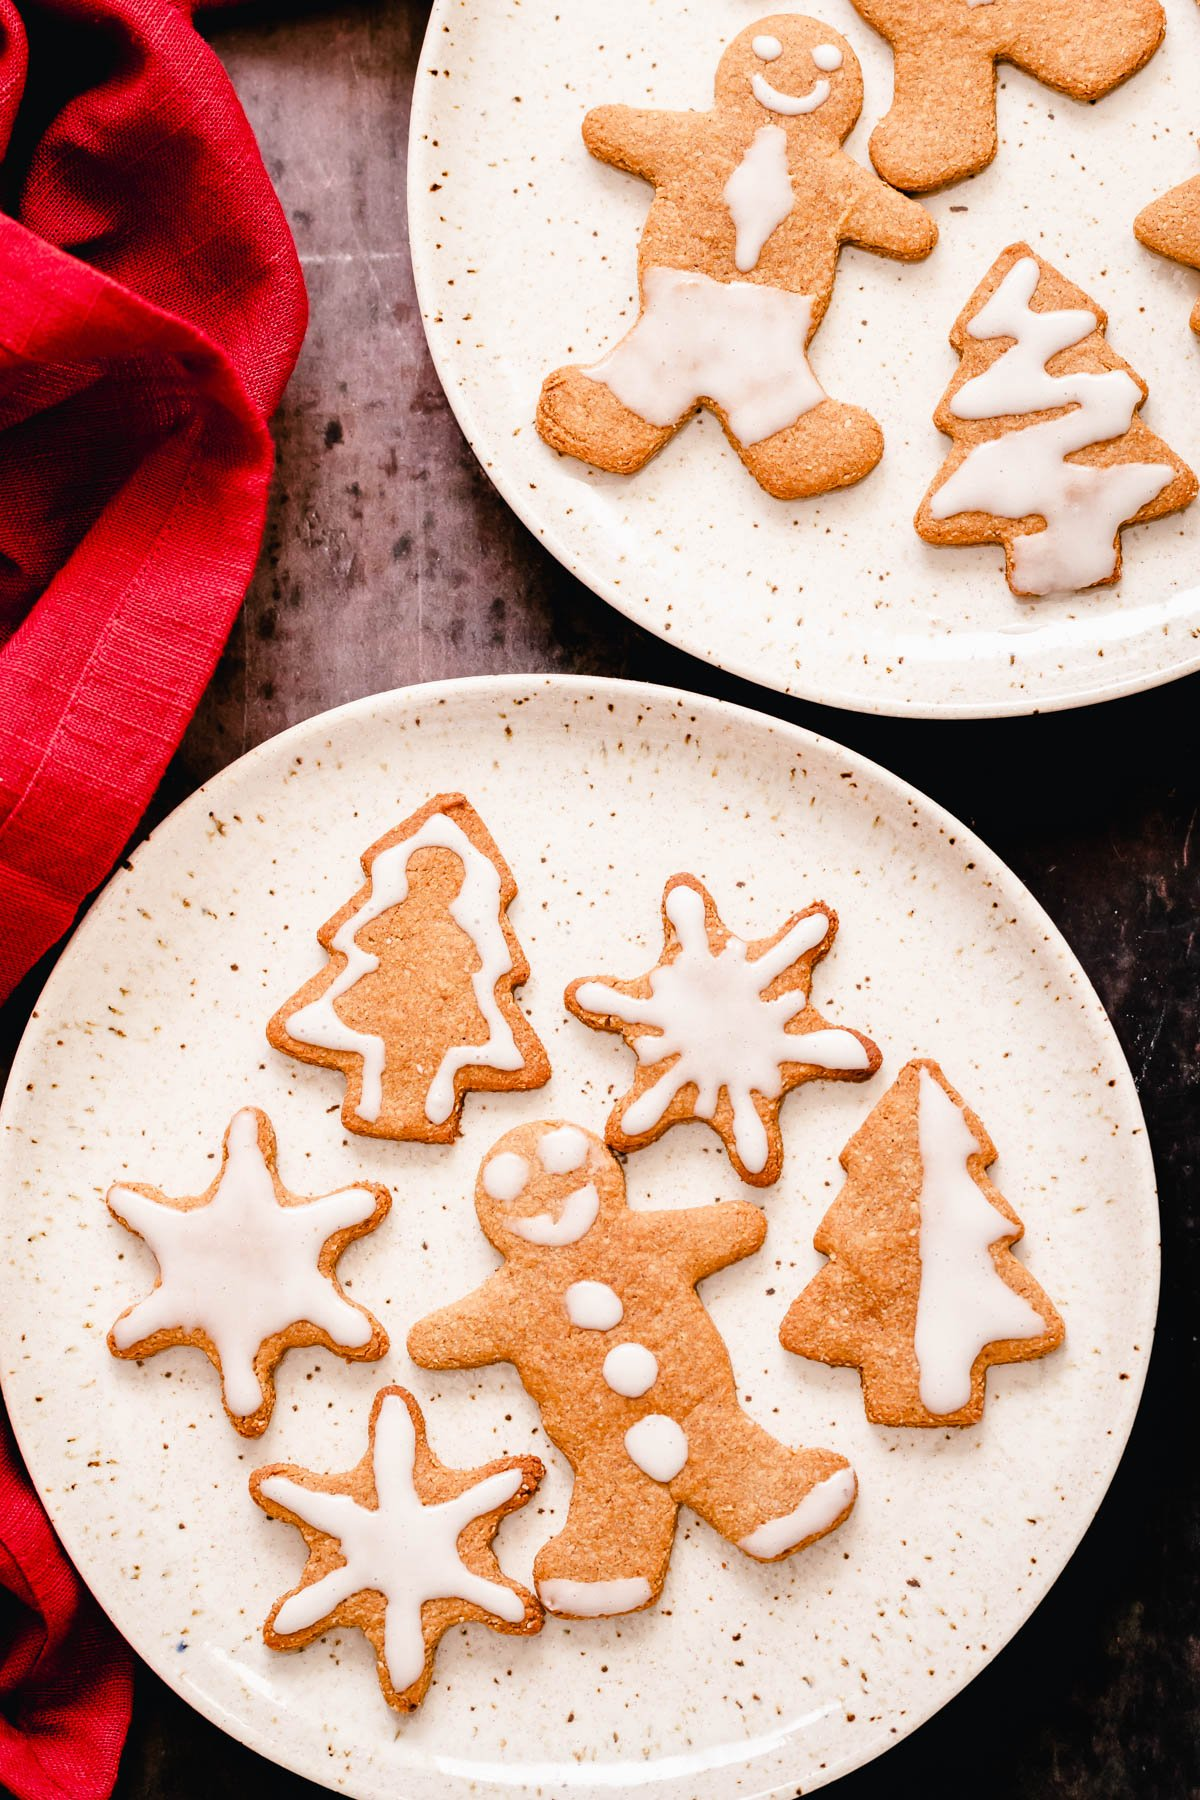 two plates with iced glutenfree vegan gingerbread cookies